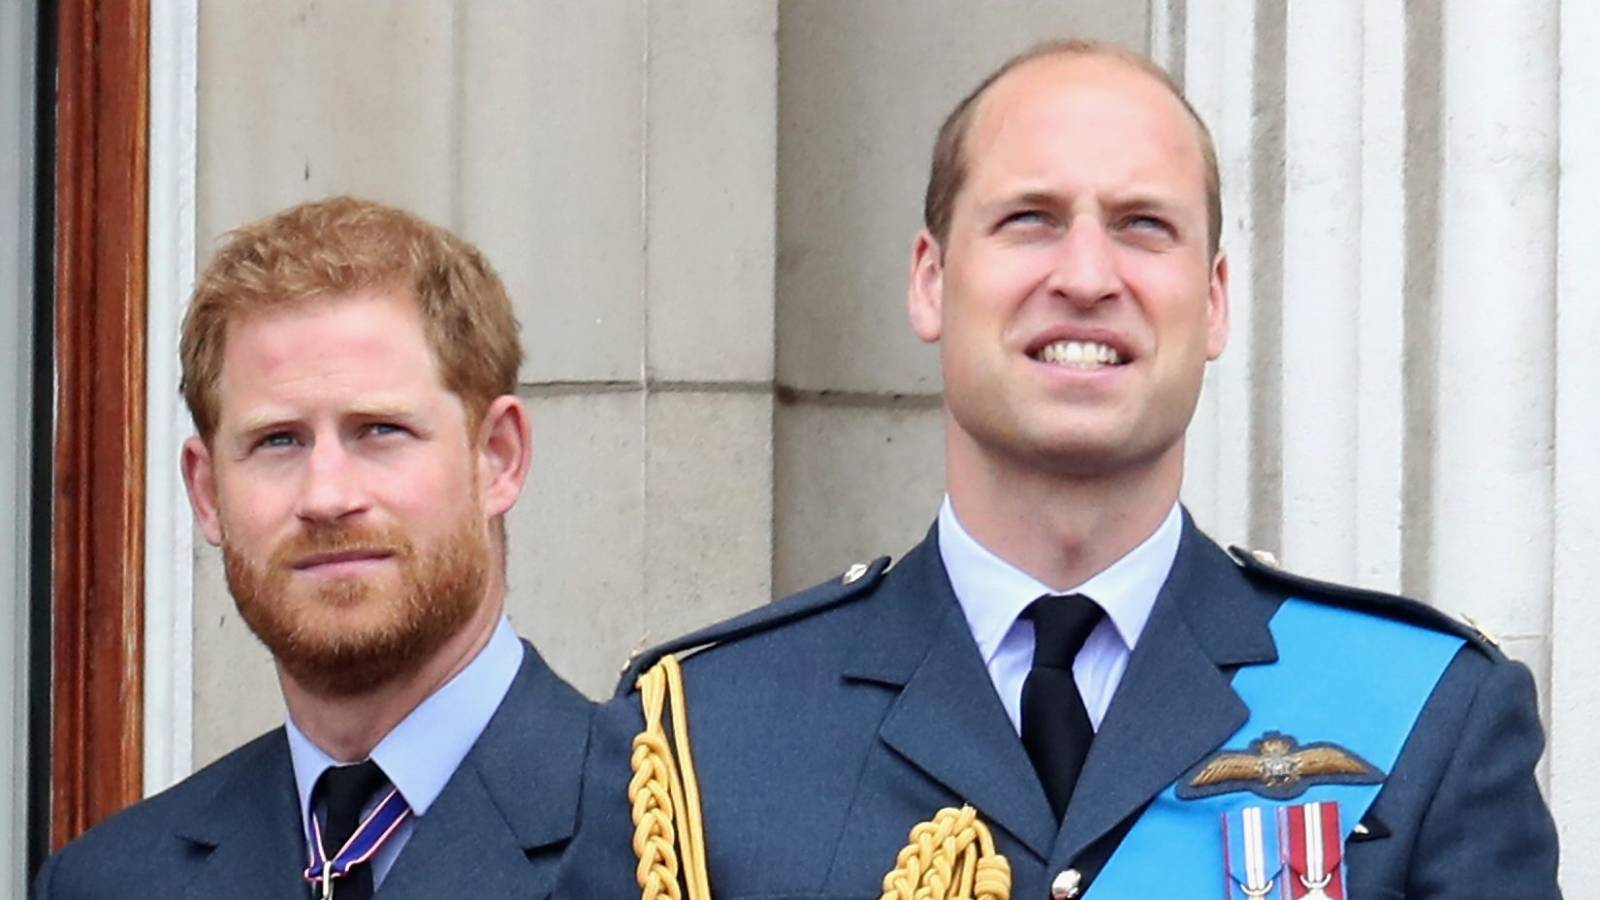 Prince William and Prince Harry formally cut ties